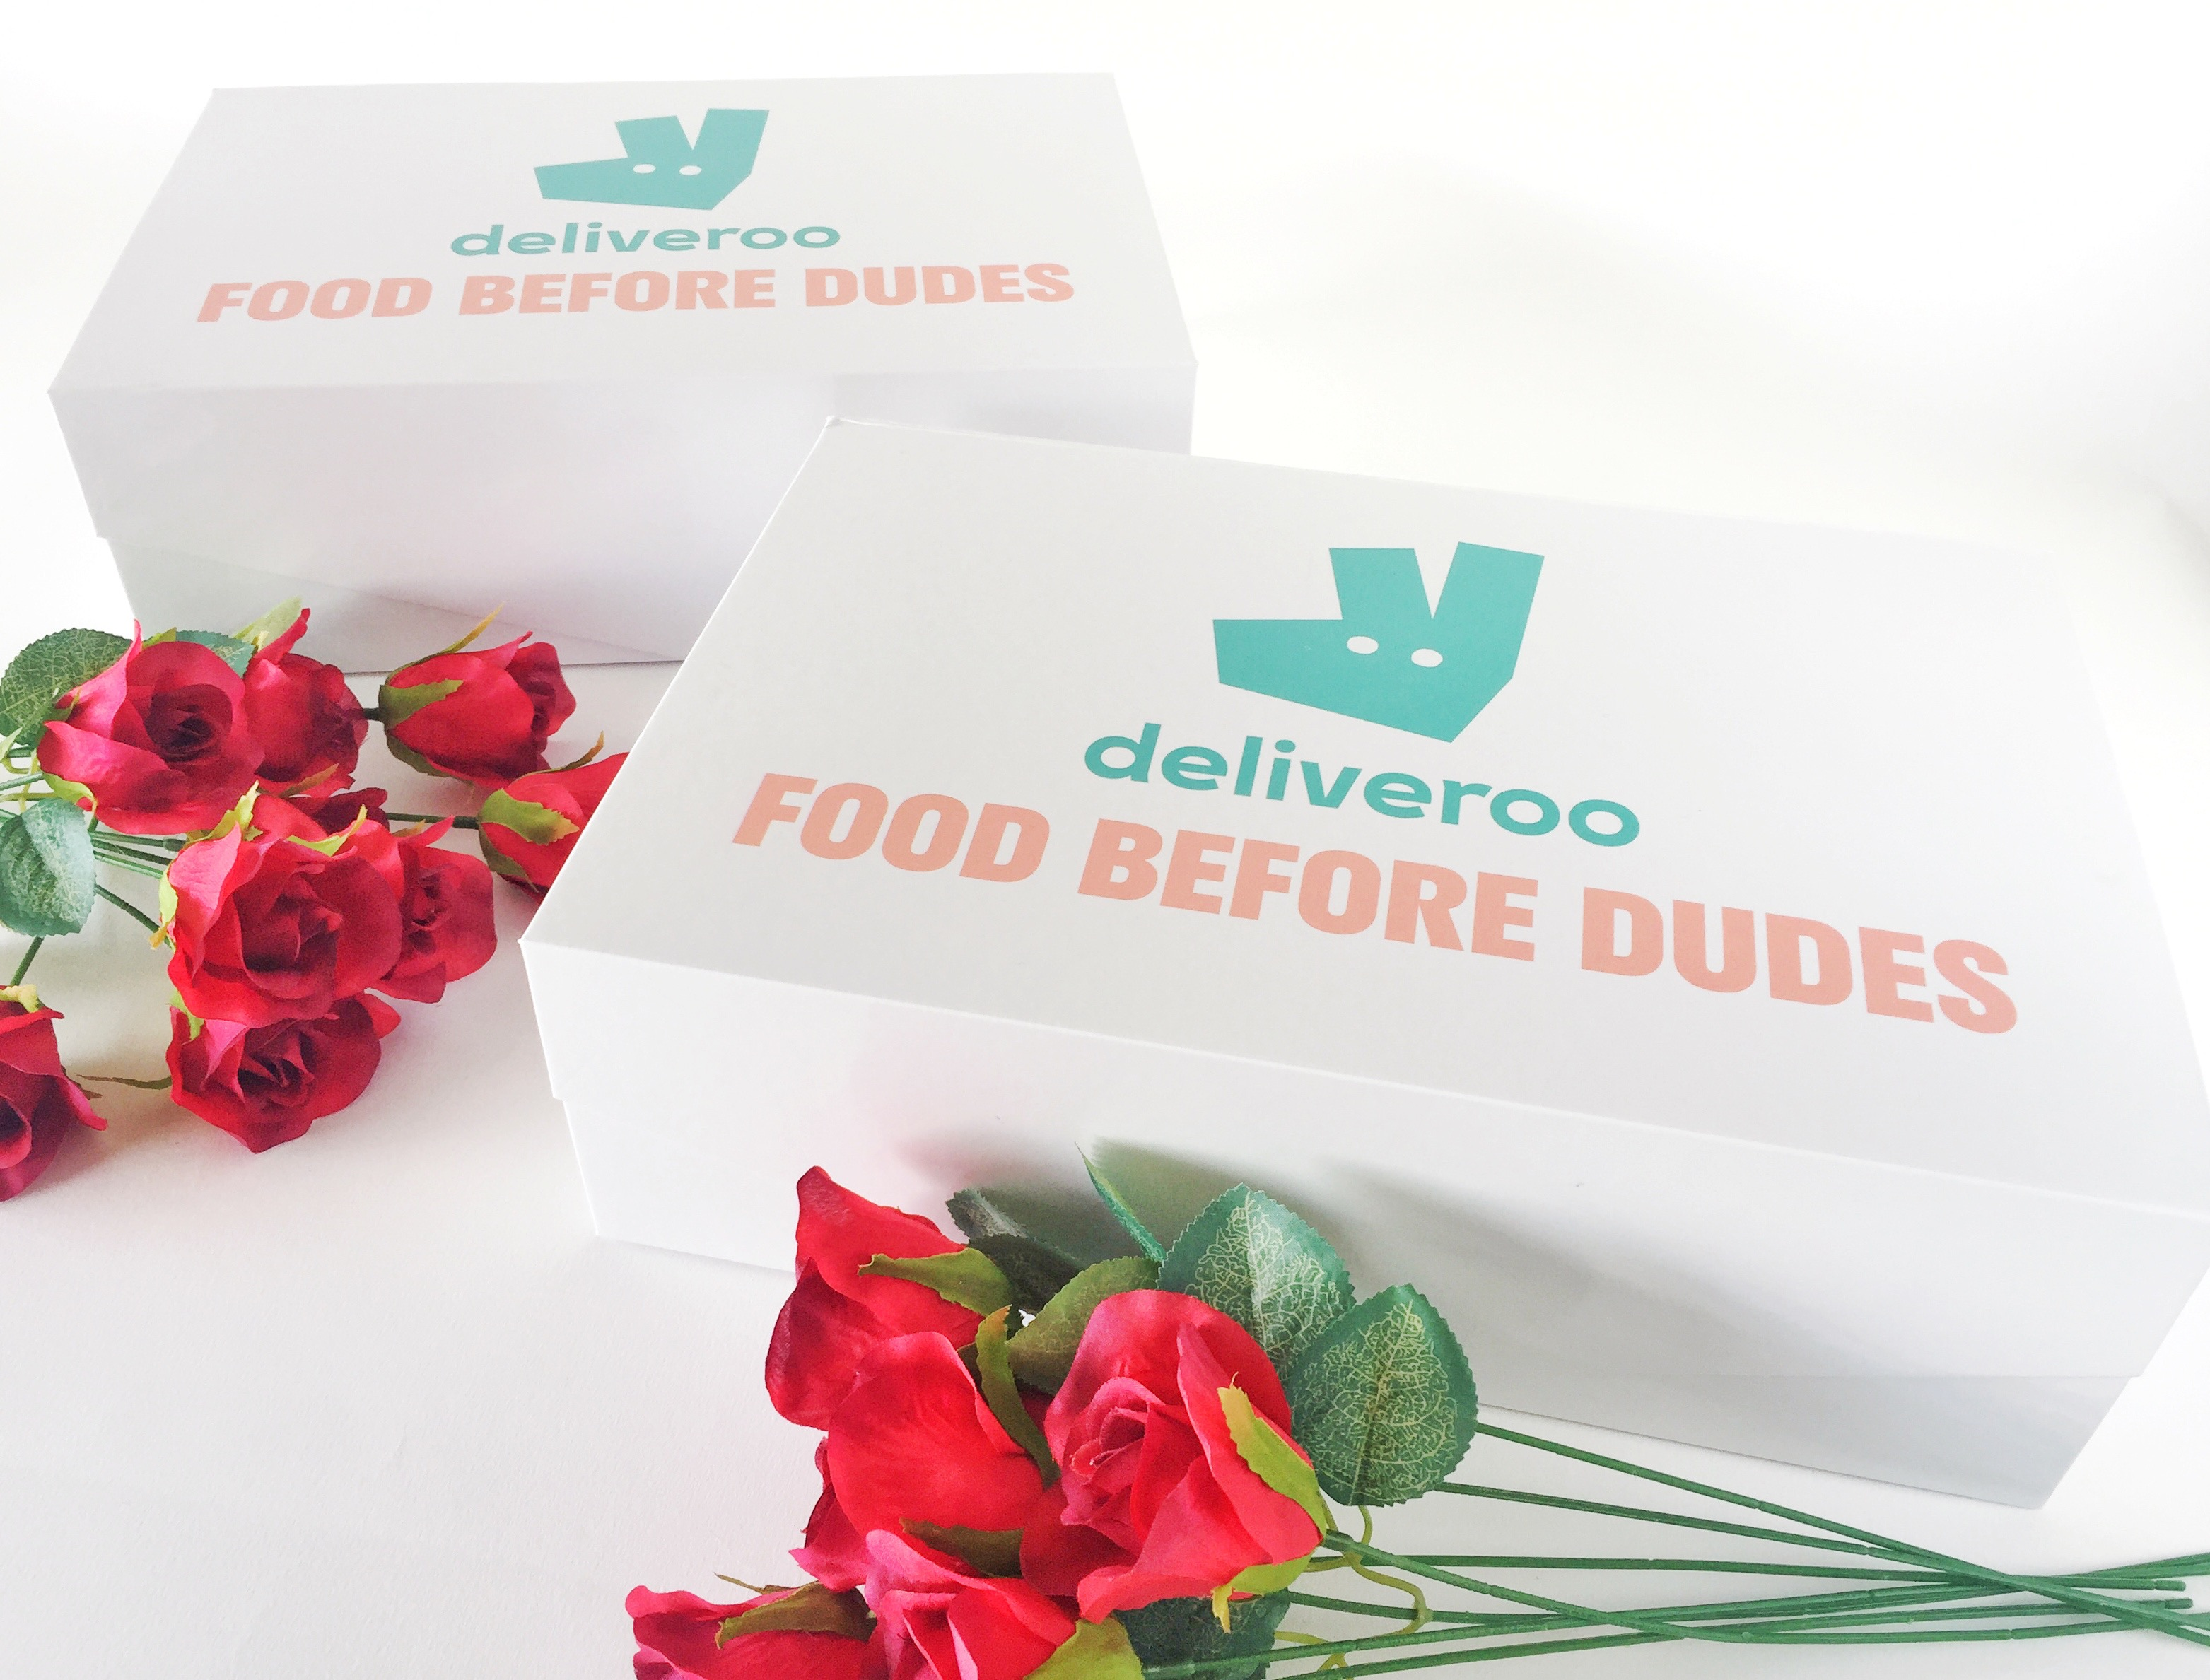 Food Before Dudes Media Kit for Deliveroo to gift The Bachelor contestants